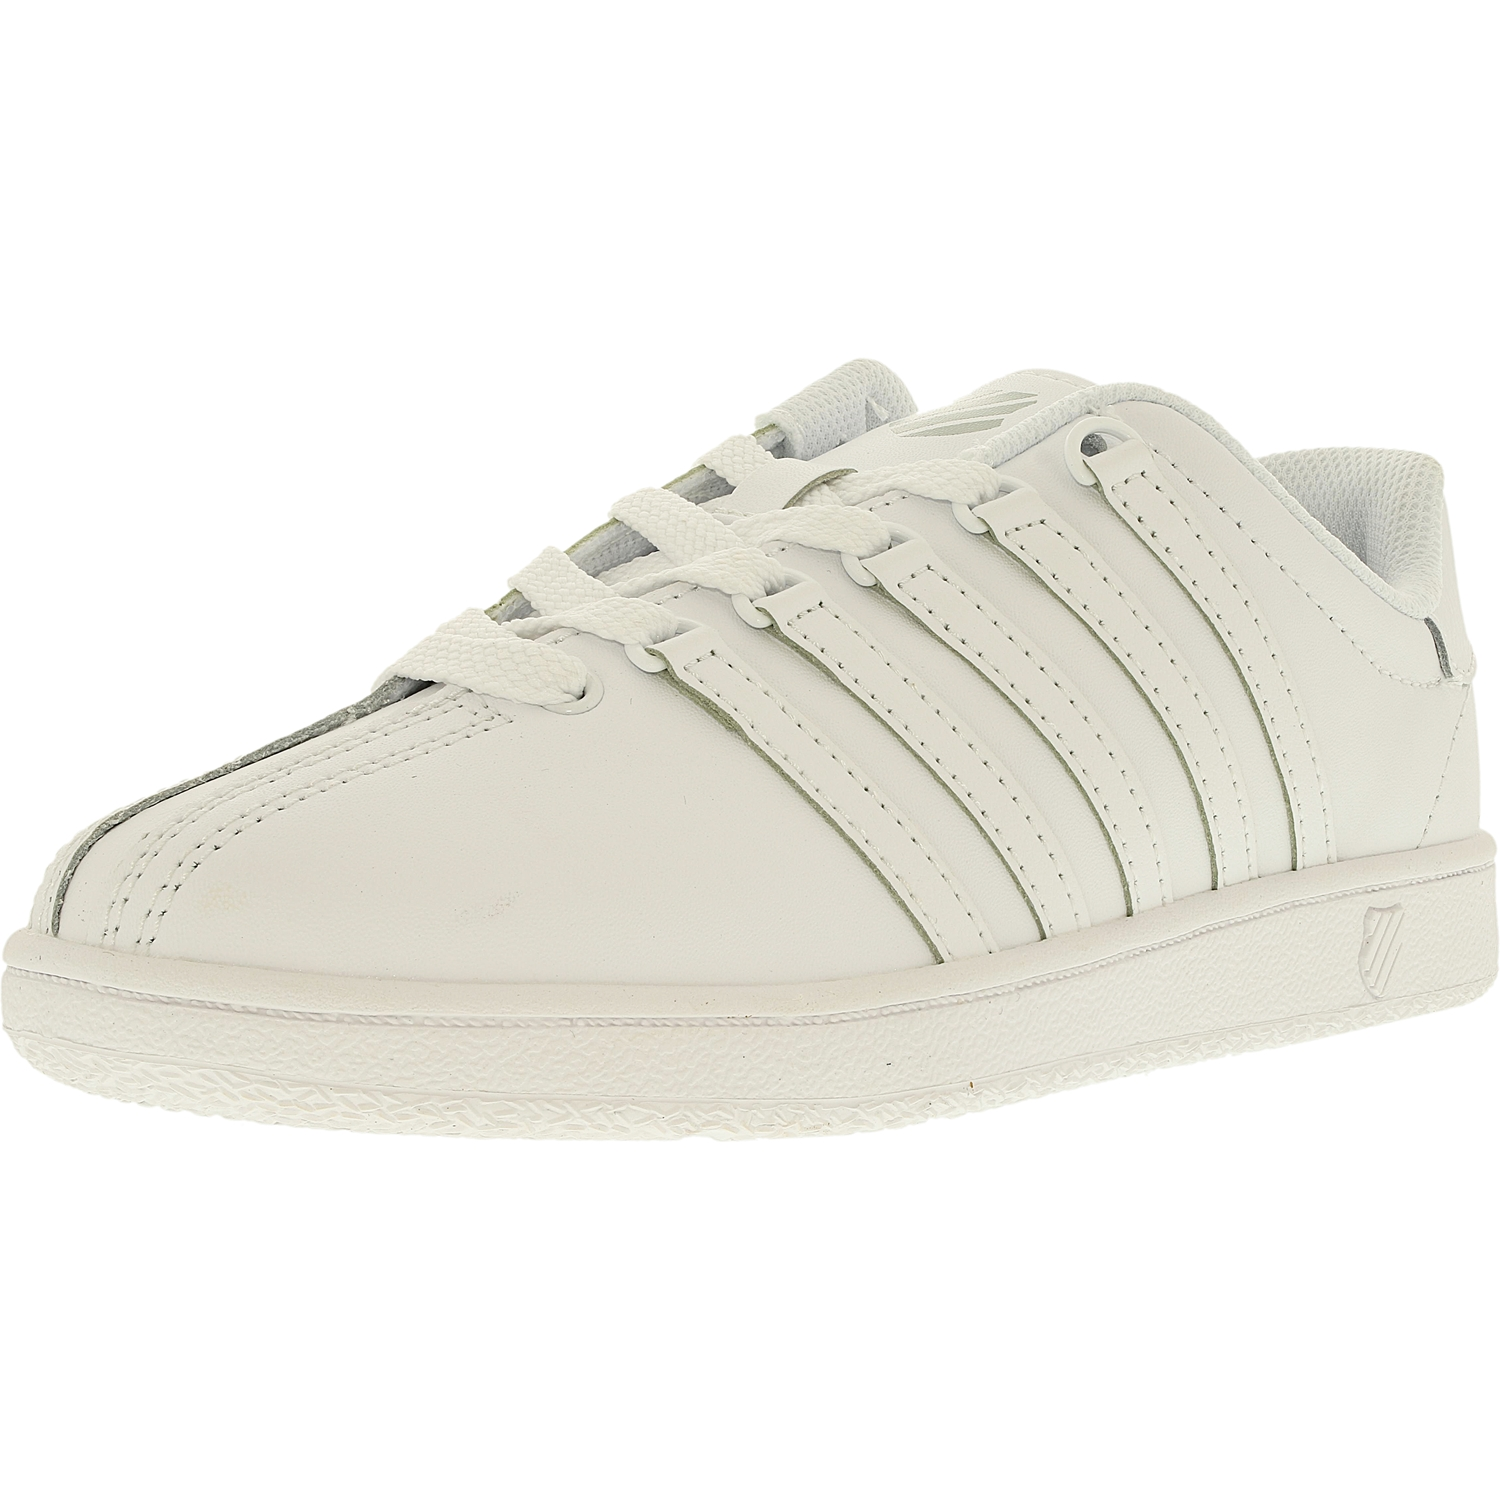 K-Swiss Boy's Classic Vn Leather White White Ankle-High Fashion Sneaker 1.5M by K-Swiss